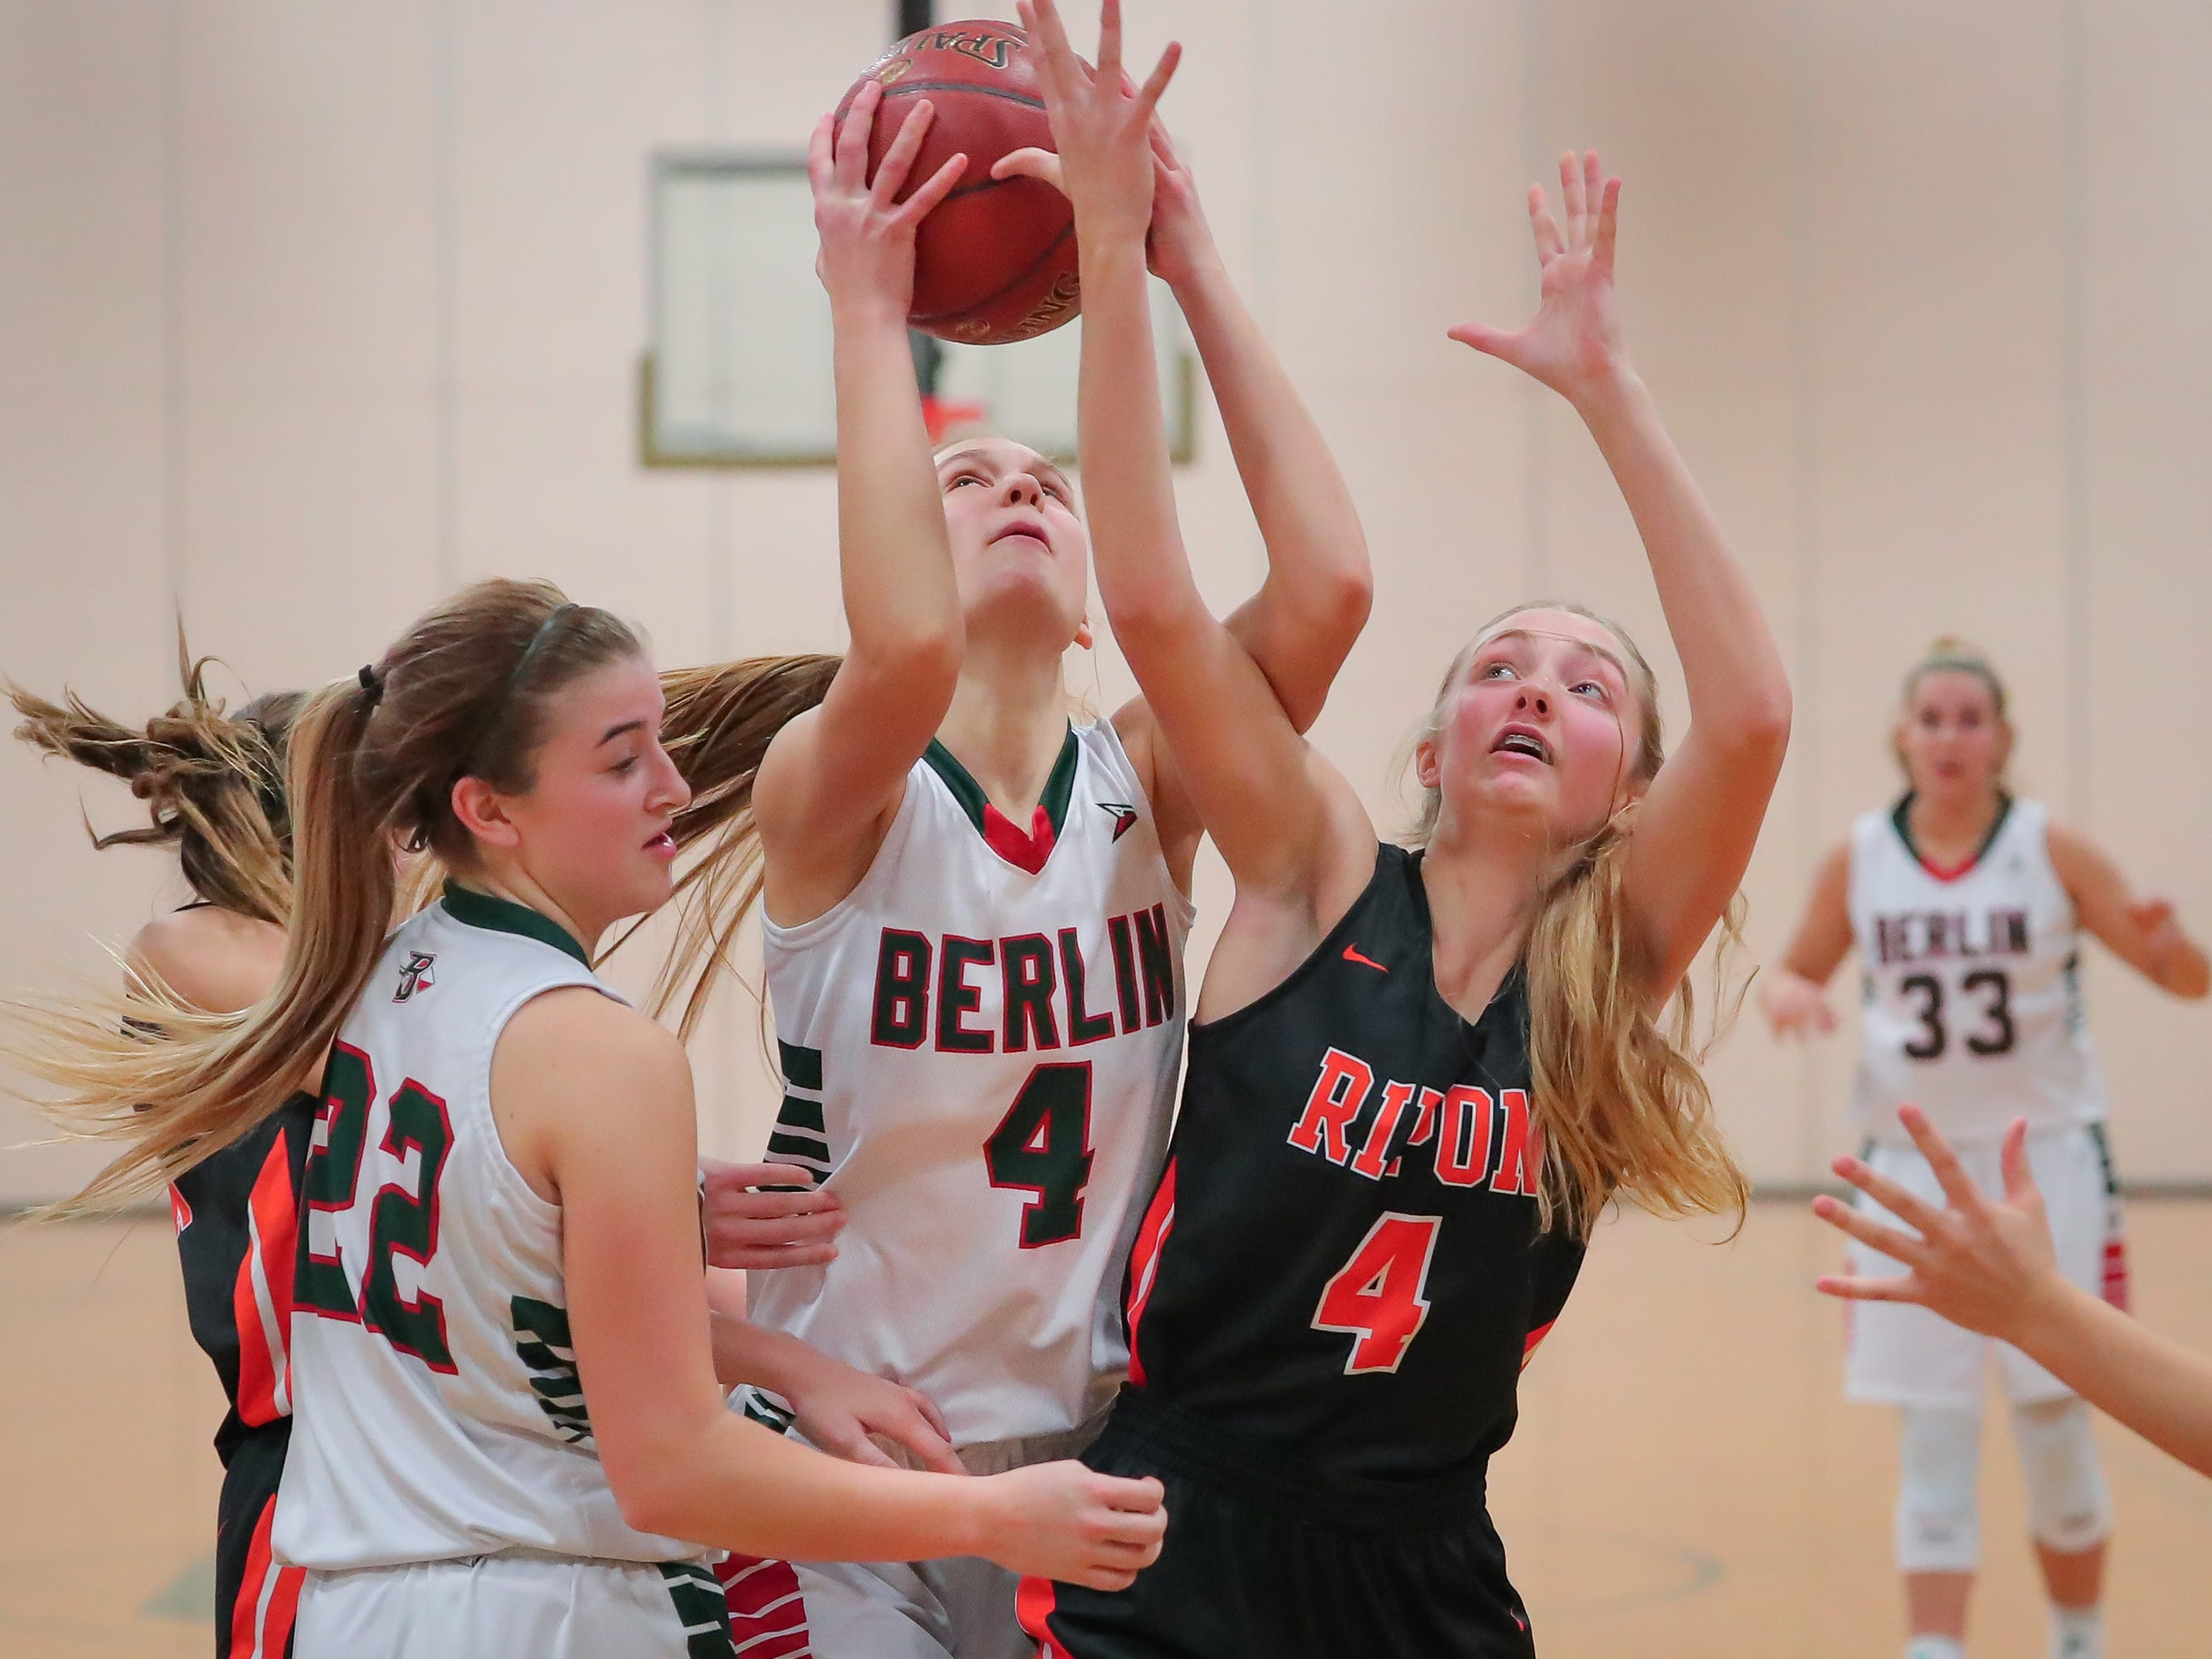 Olivia Bartol (4) of Berlin fights her way for a shot in the second half. The Berlin Indians hosted the Ripon Tigers in an East Central Conference girls basketball matchup Friday evening, December 21, 2018.